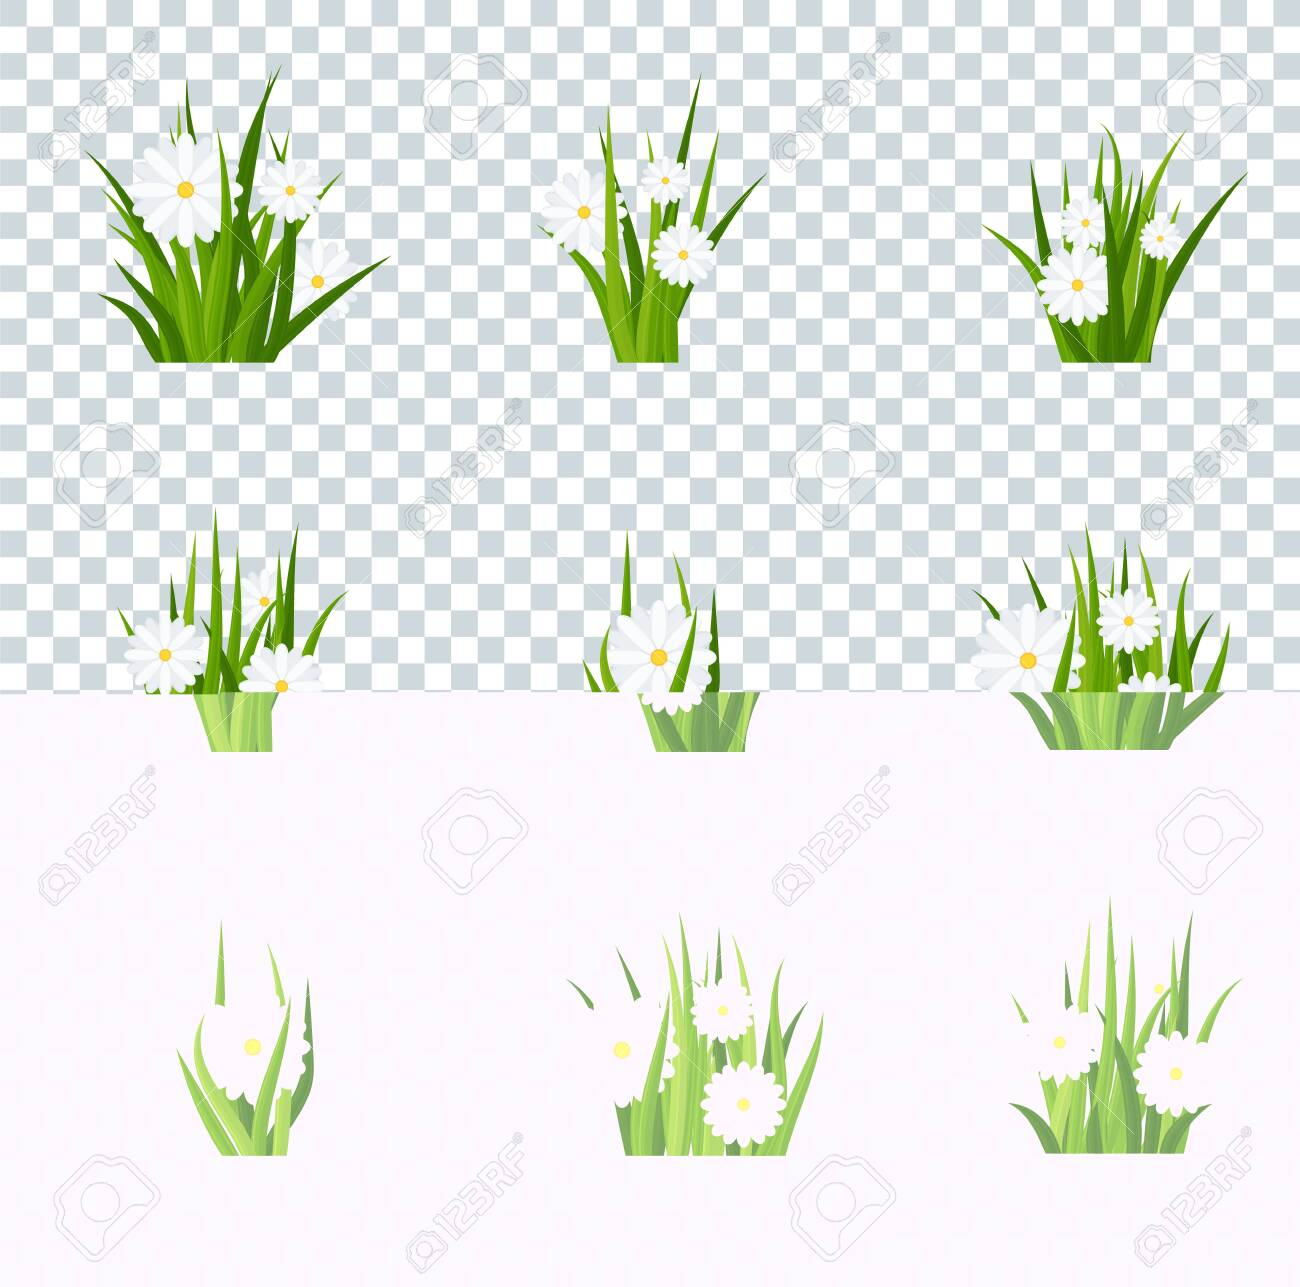 Camomiles in green grass tufts on transparent background  Template